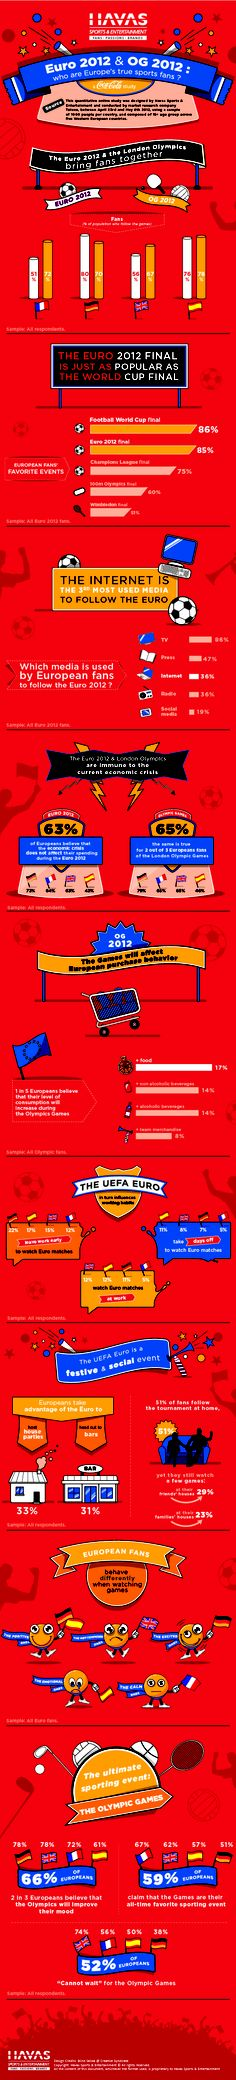 Havas Sport  Entertainment Summer of Sport Infographic shows the excitement around the UEFA EURO 2012 and the London 2012 Olympics, based on a study HSE designed for the Coca Cola Company.